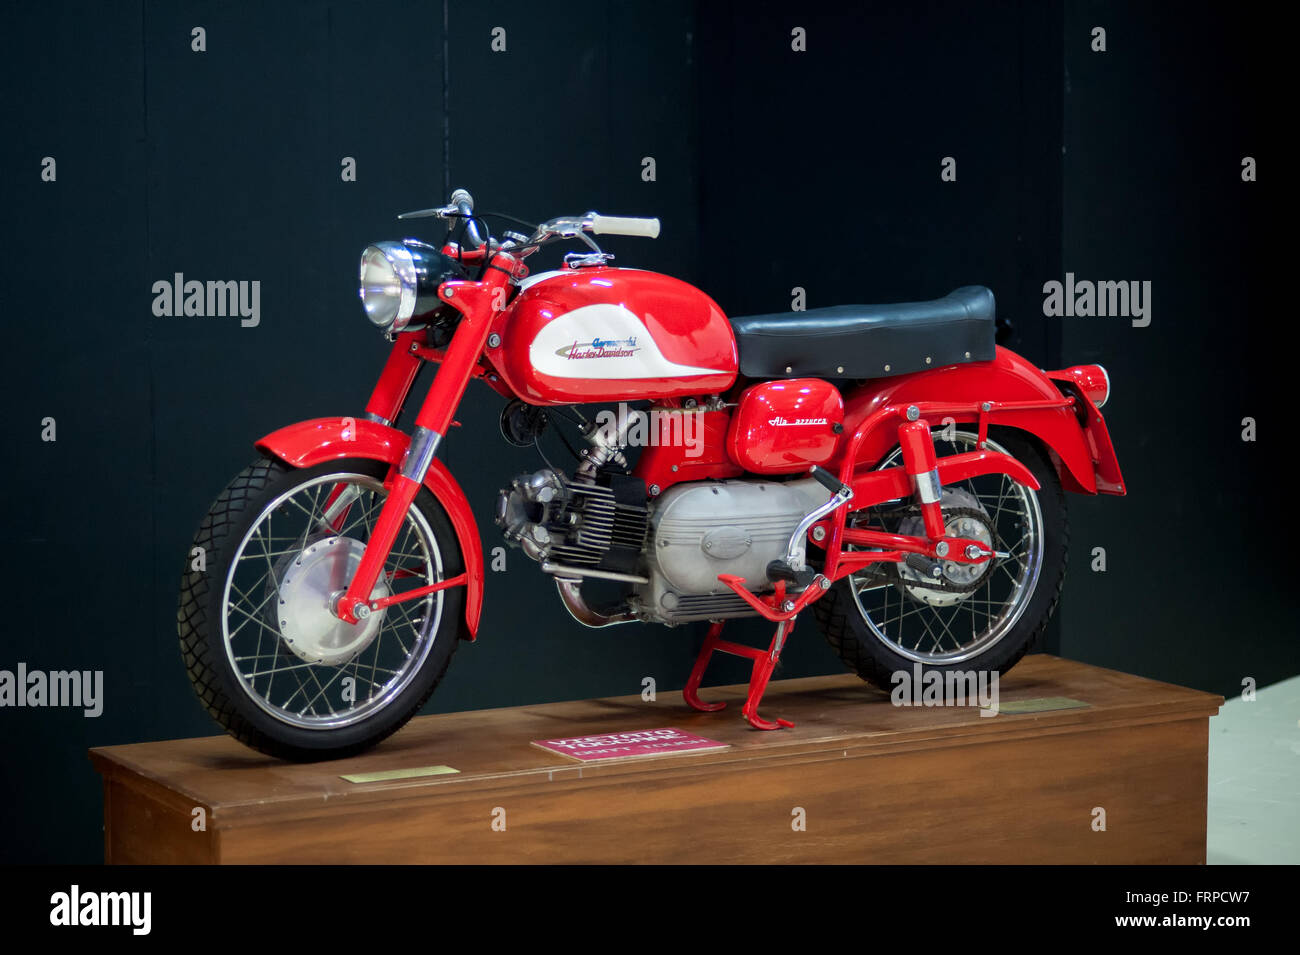 Single old fashioned red and white Harley Davidson- Aermacchi motorcycle on wooden display stand in front of black - Stock Image